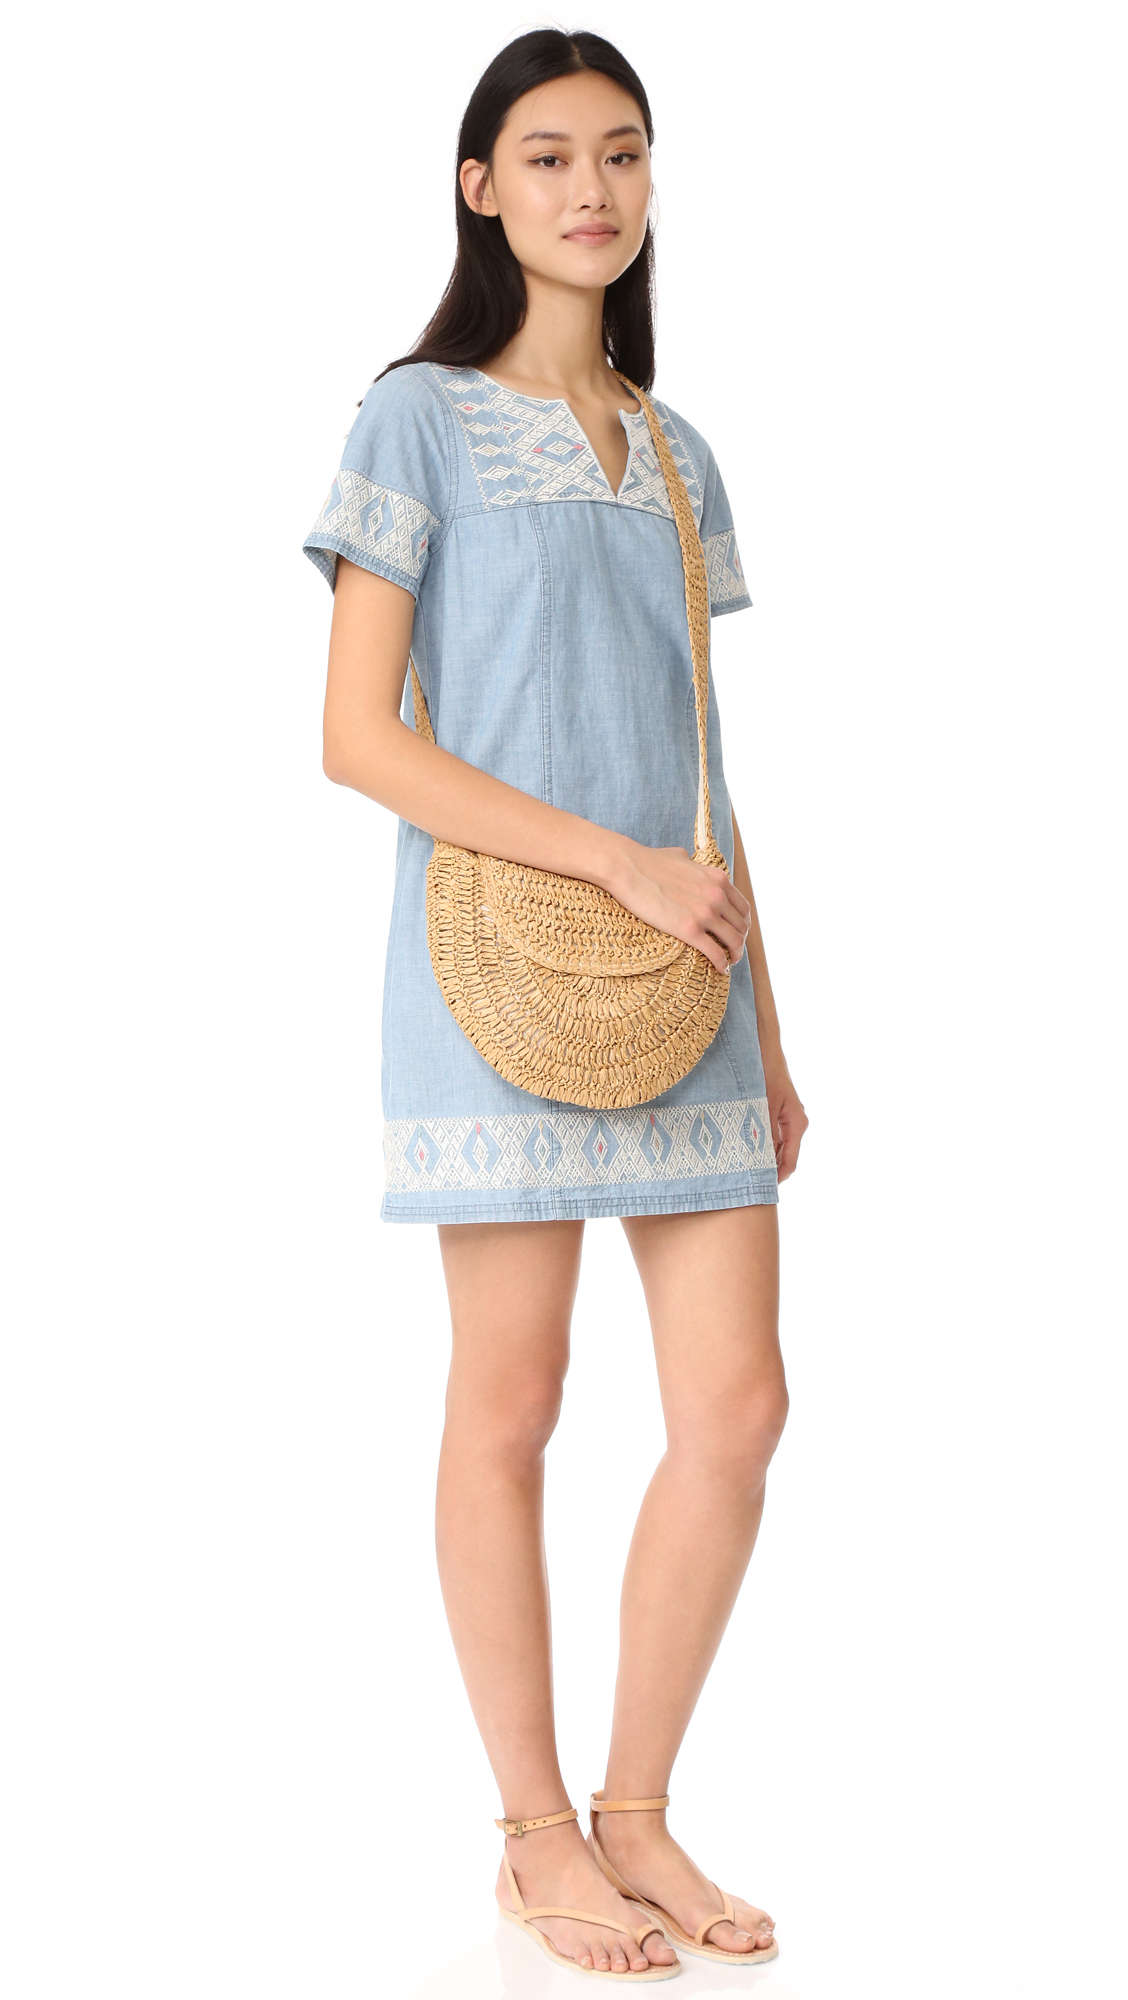 e4d61a21653d86 Madewell Embroidered Chambray Tunic Dress | SHOPBOP